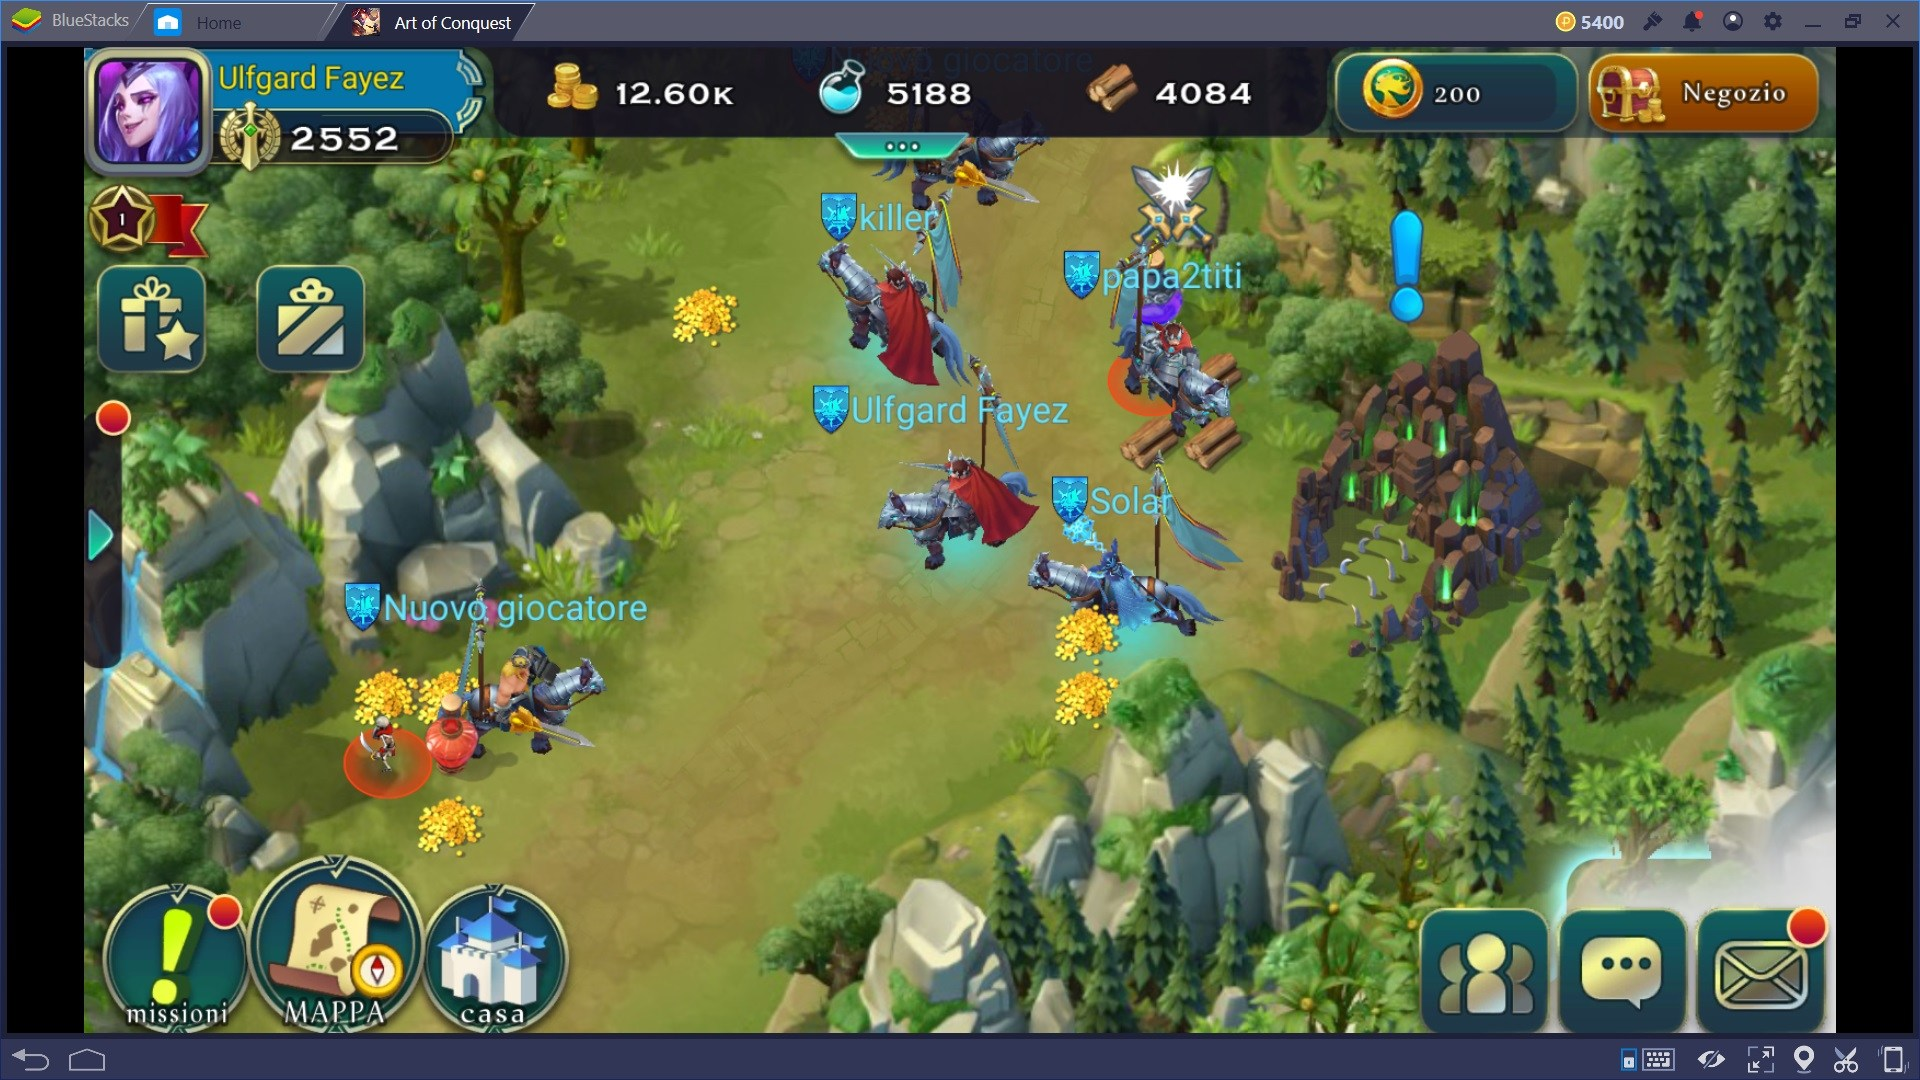 Art of Conquest: guida per principianti